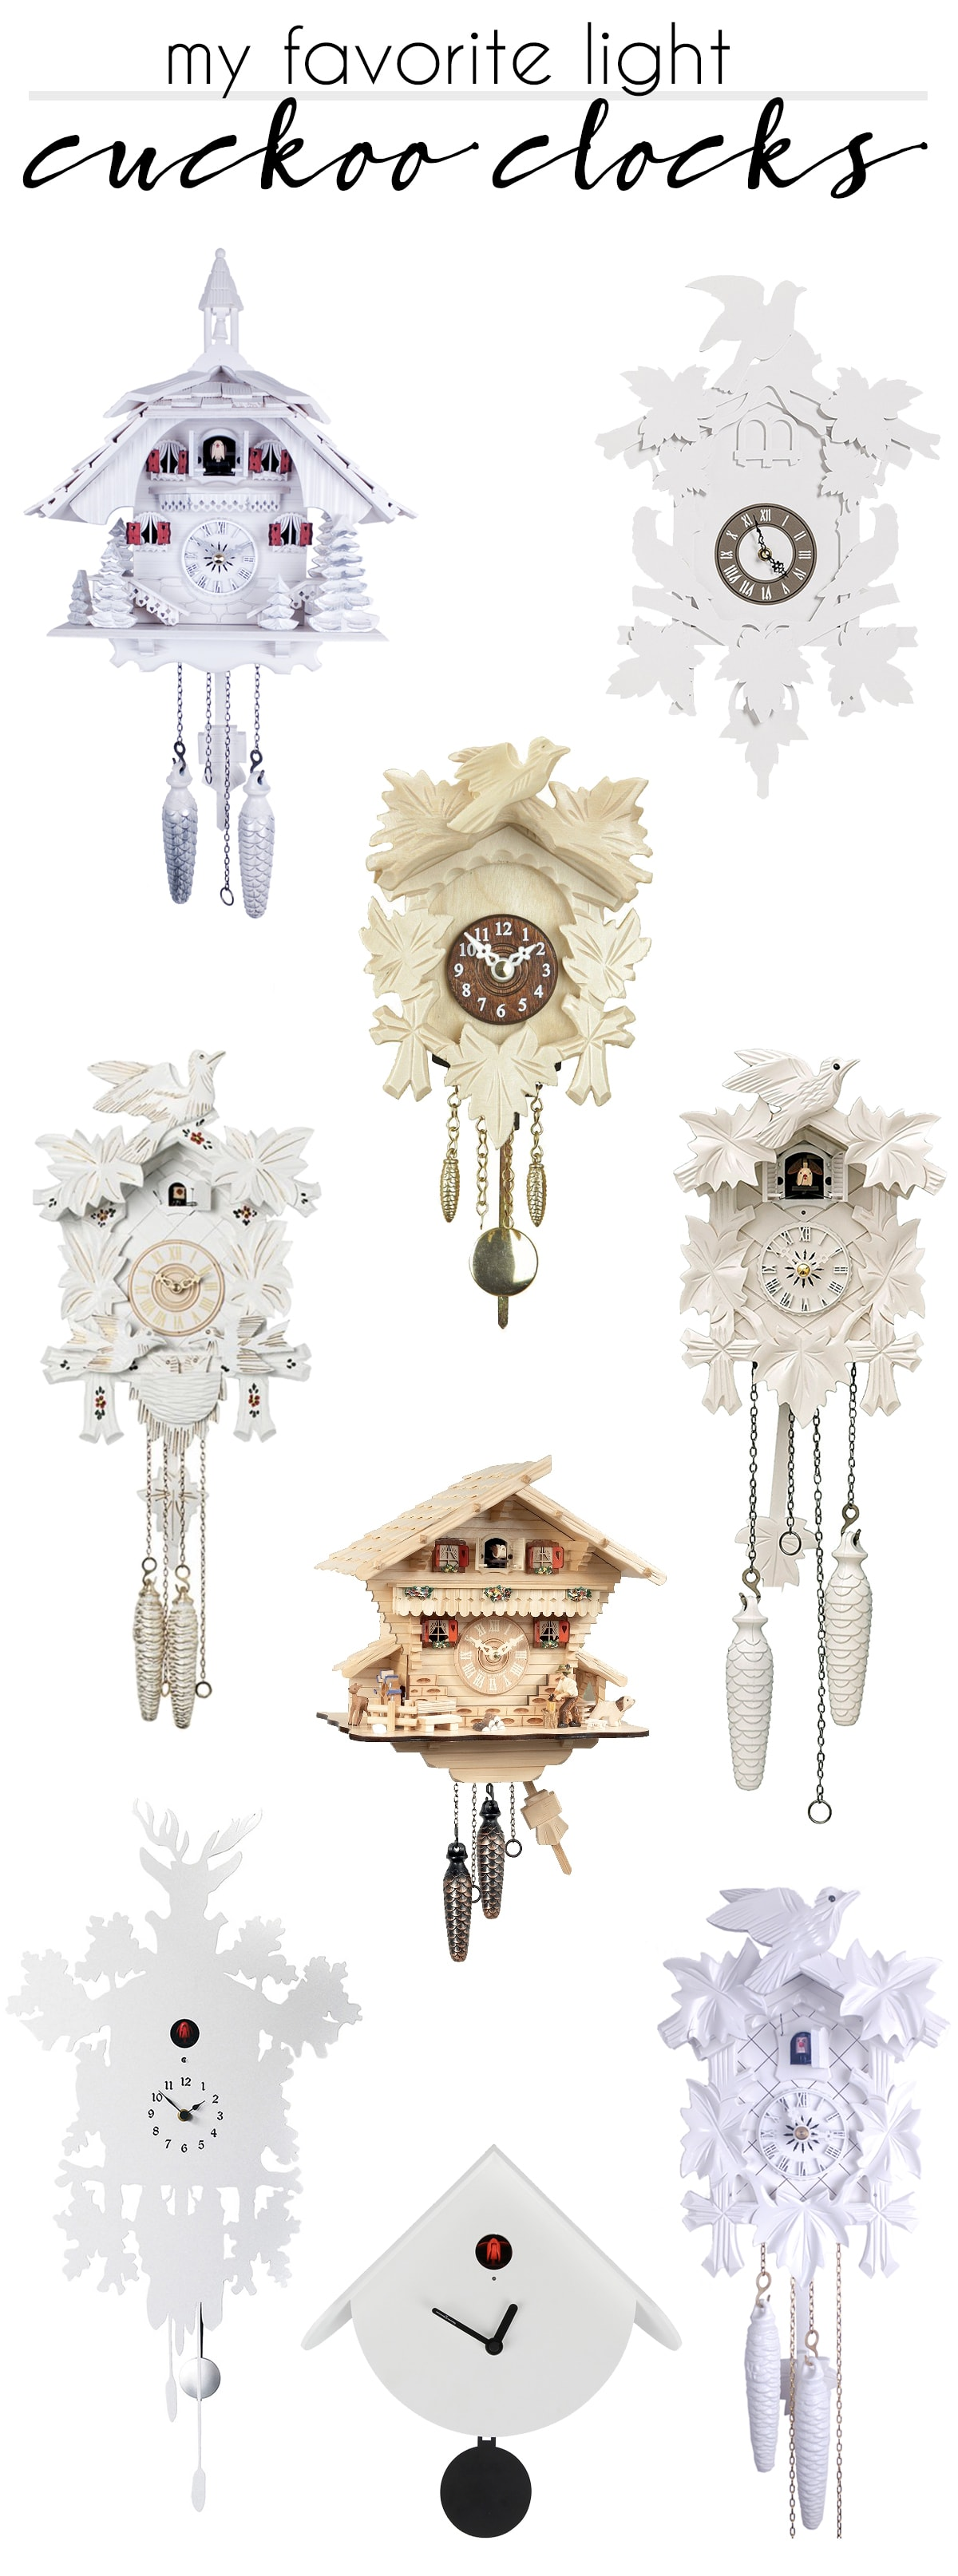 my favorite light colored cuckoo clocks - white, cream and maple cuckoo clocks